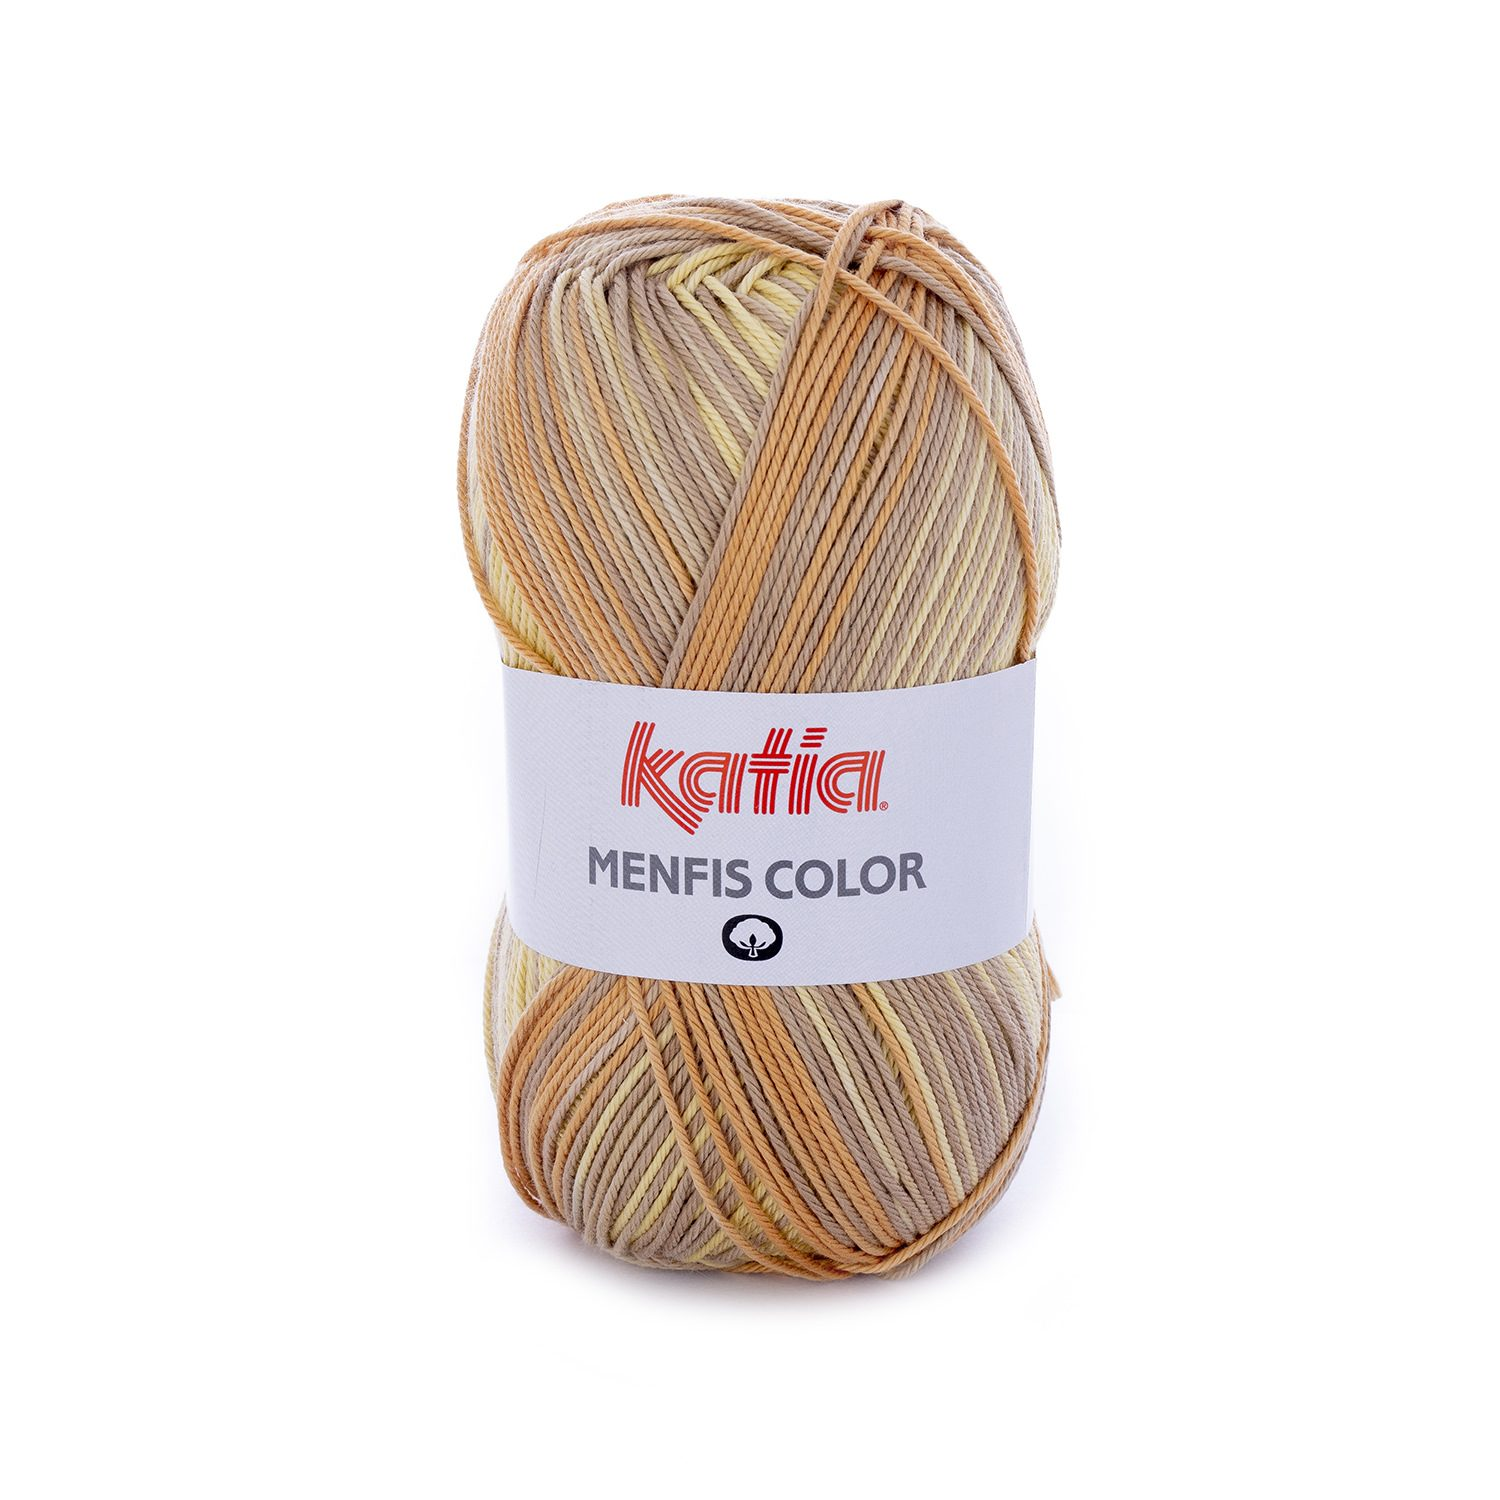 yarn-wool-menfiscolor-knit-cotton-light-yellow-beige-spring-summer-katia-104-g